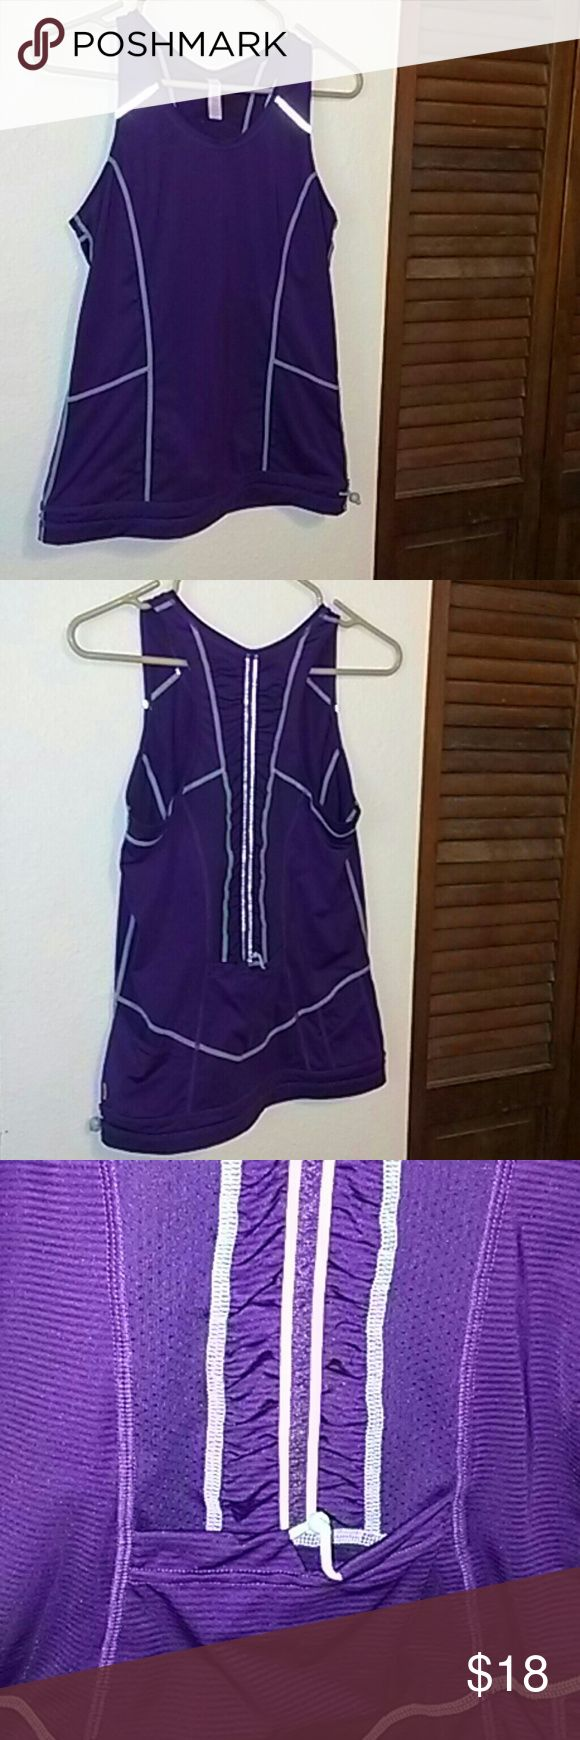 Pretty Lucy athletic tank Lucy athletic tank in EUC! Purple with teal. Side pockets and rear pocket. Super cute! Lucy Tops Tank Tops